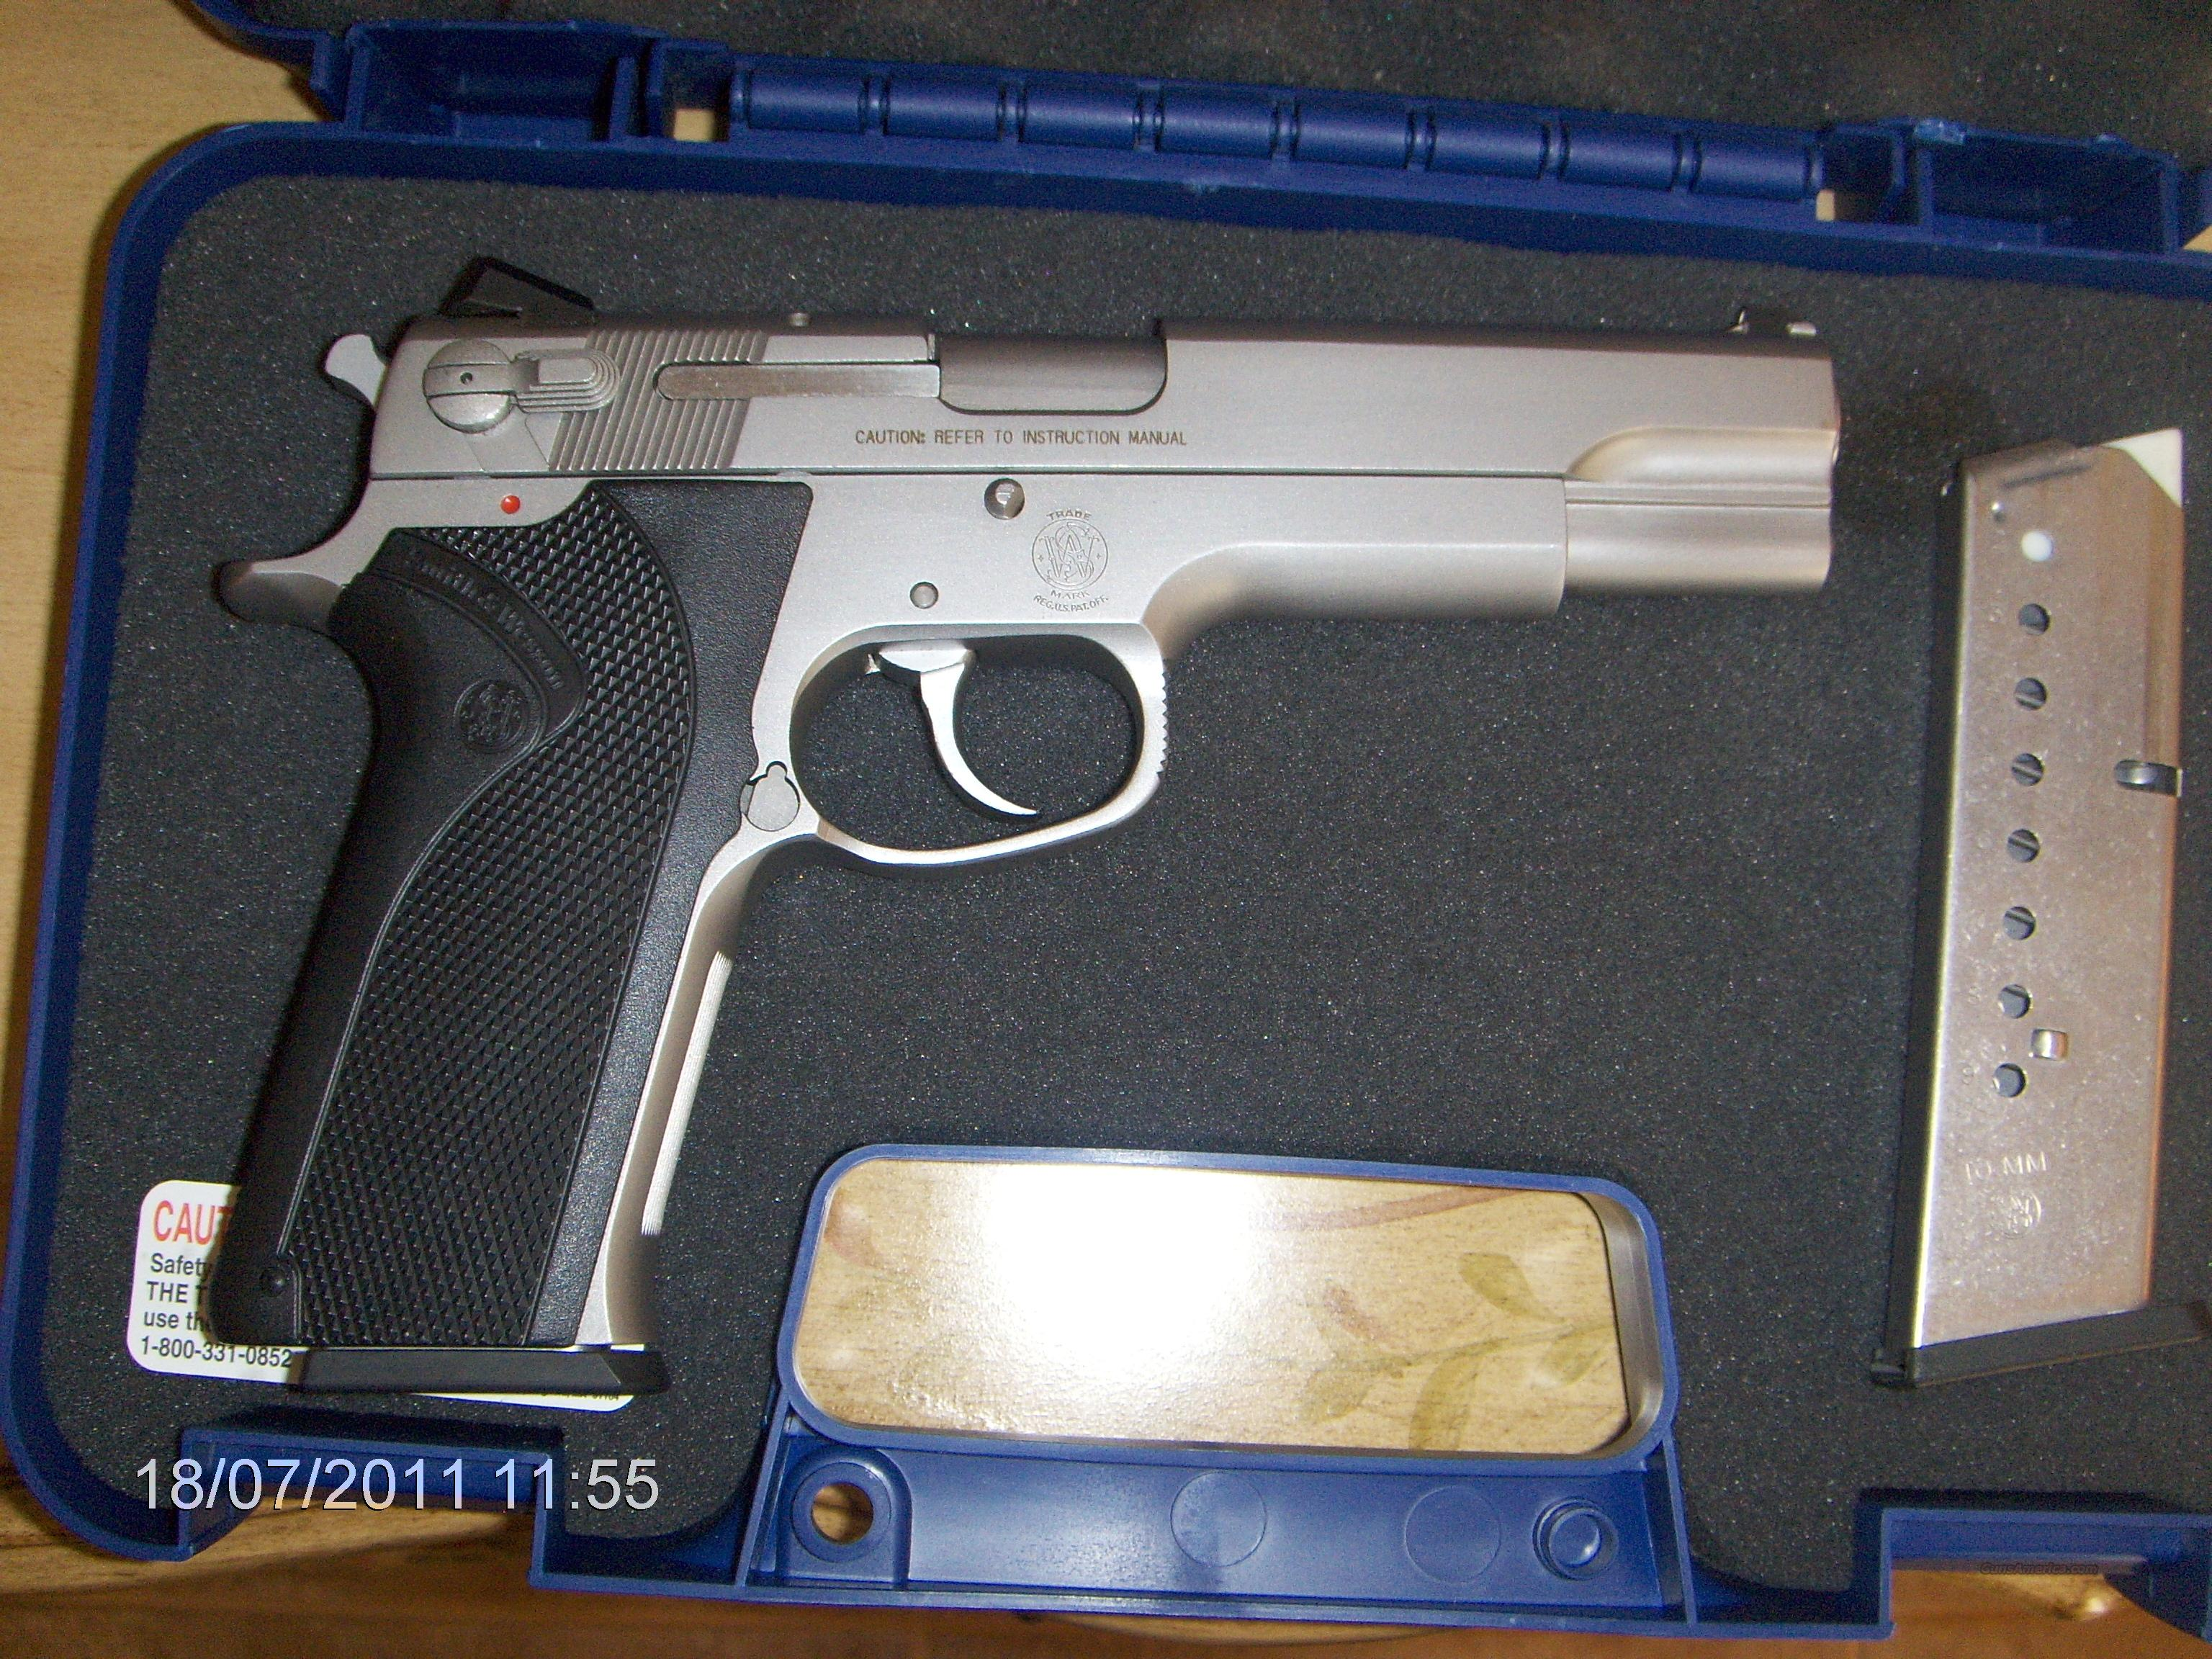 Smith & Wesson 1006 S&W  Guns > Pistols > Smith & Wesson Pistols - Autos > Steel Frame